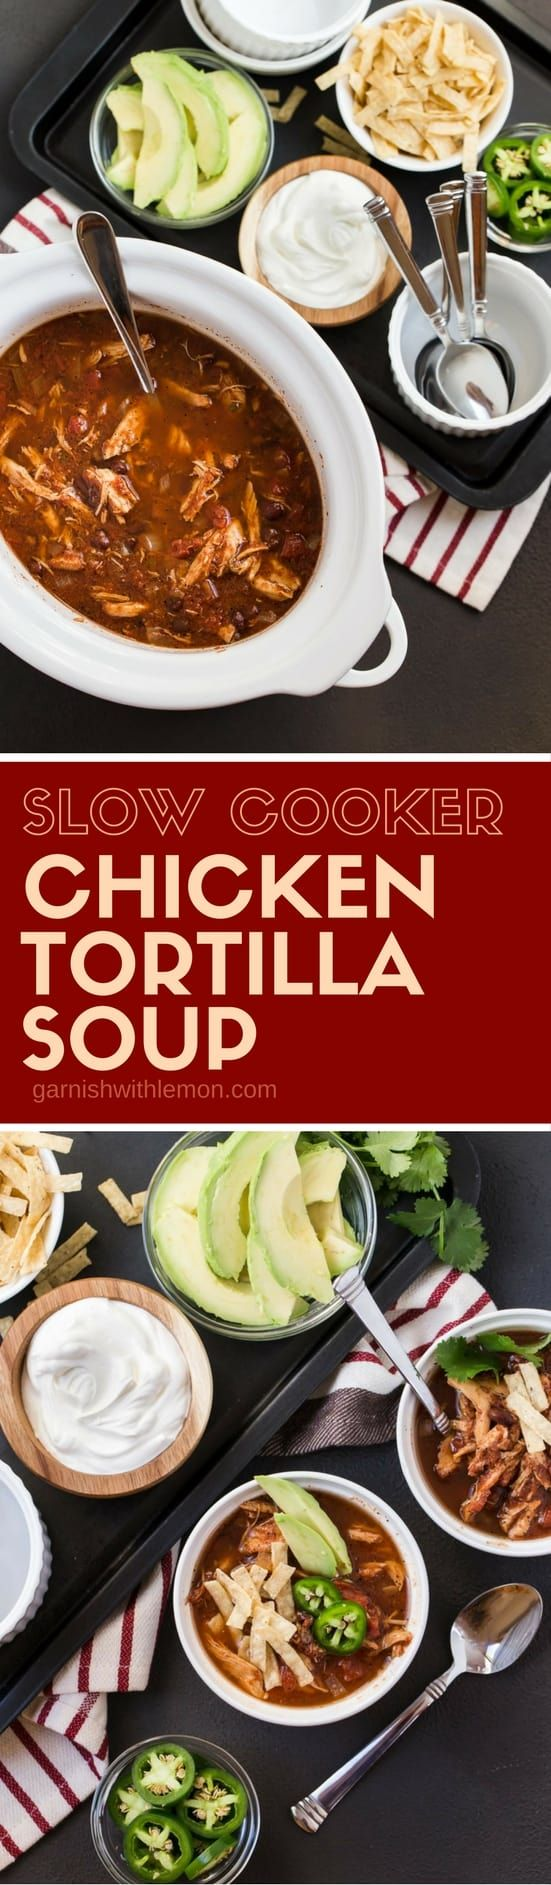 Let your slow cooker do all the work for dinner with this Slow Cooker Chicken Tortilla Soup recipe! Great for groups!